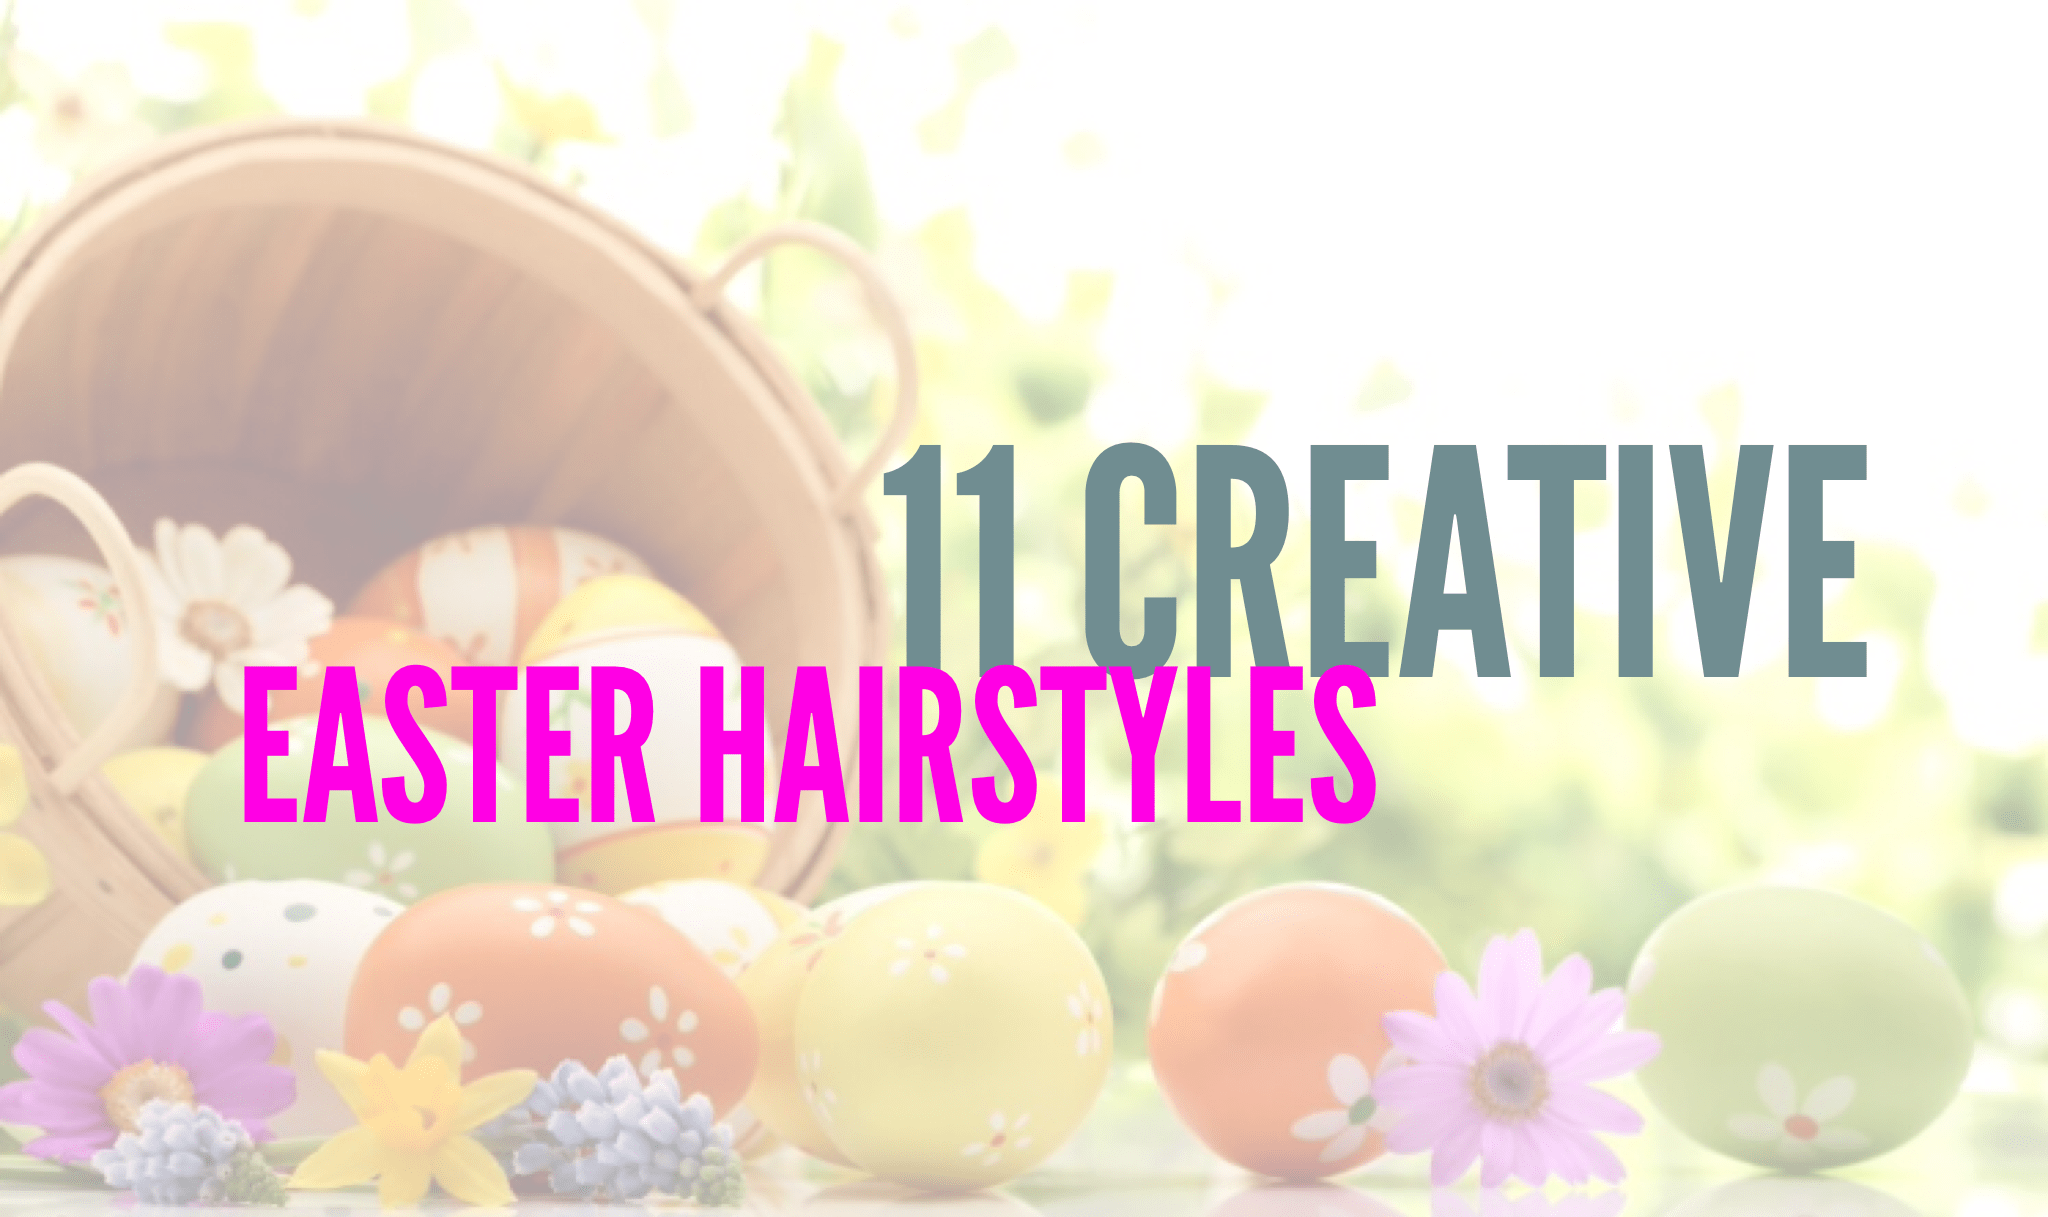 Check out some creative Easter hairstyles that you can wear this year. Even if you don't celebrate Easter, some of these are fun spring styles that anyone can wear.